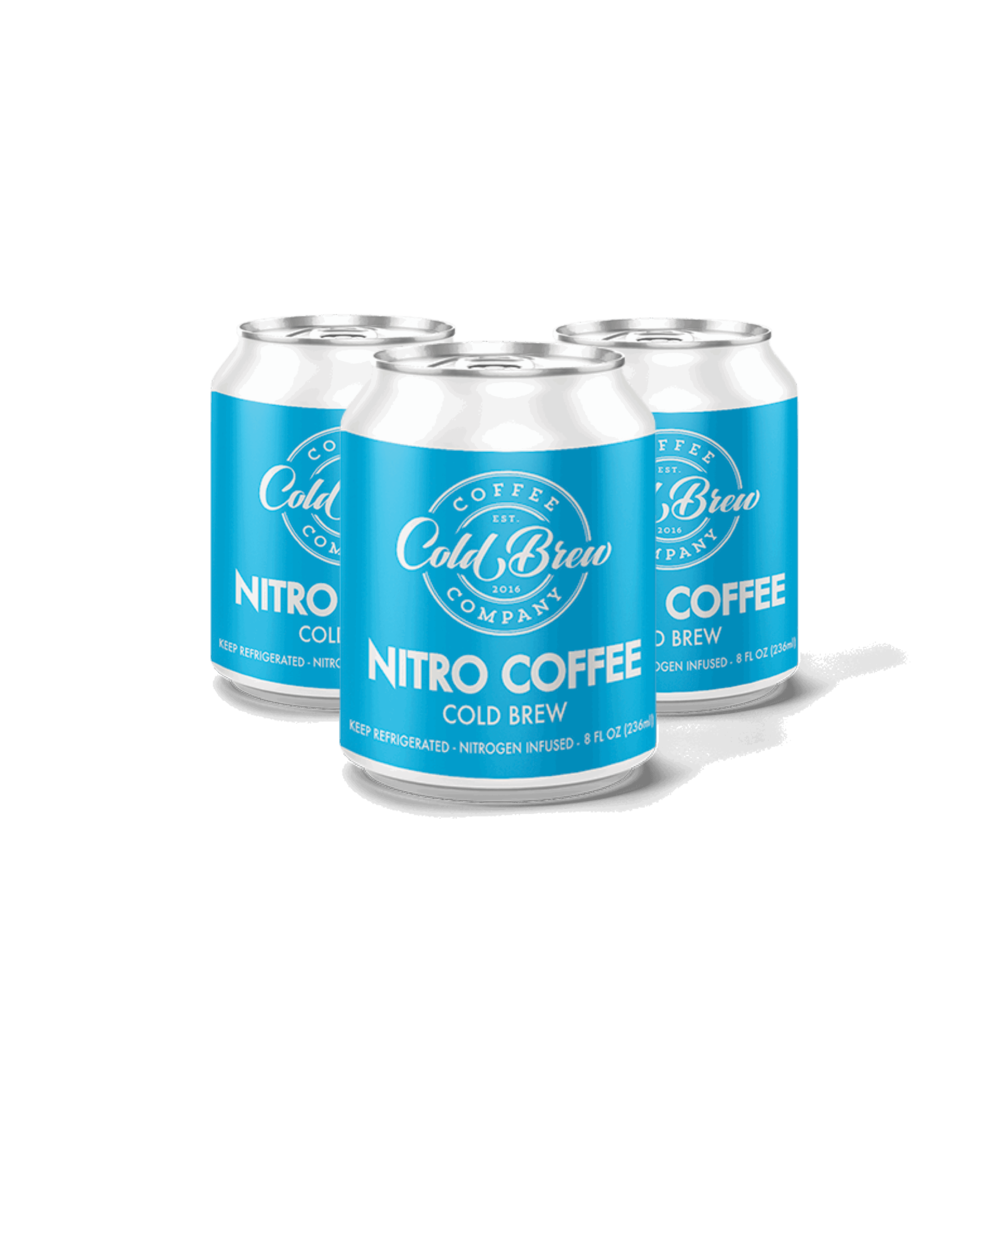 coffee-nitro-cold-brew-coffee-6-pack-1.png